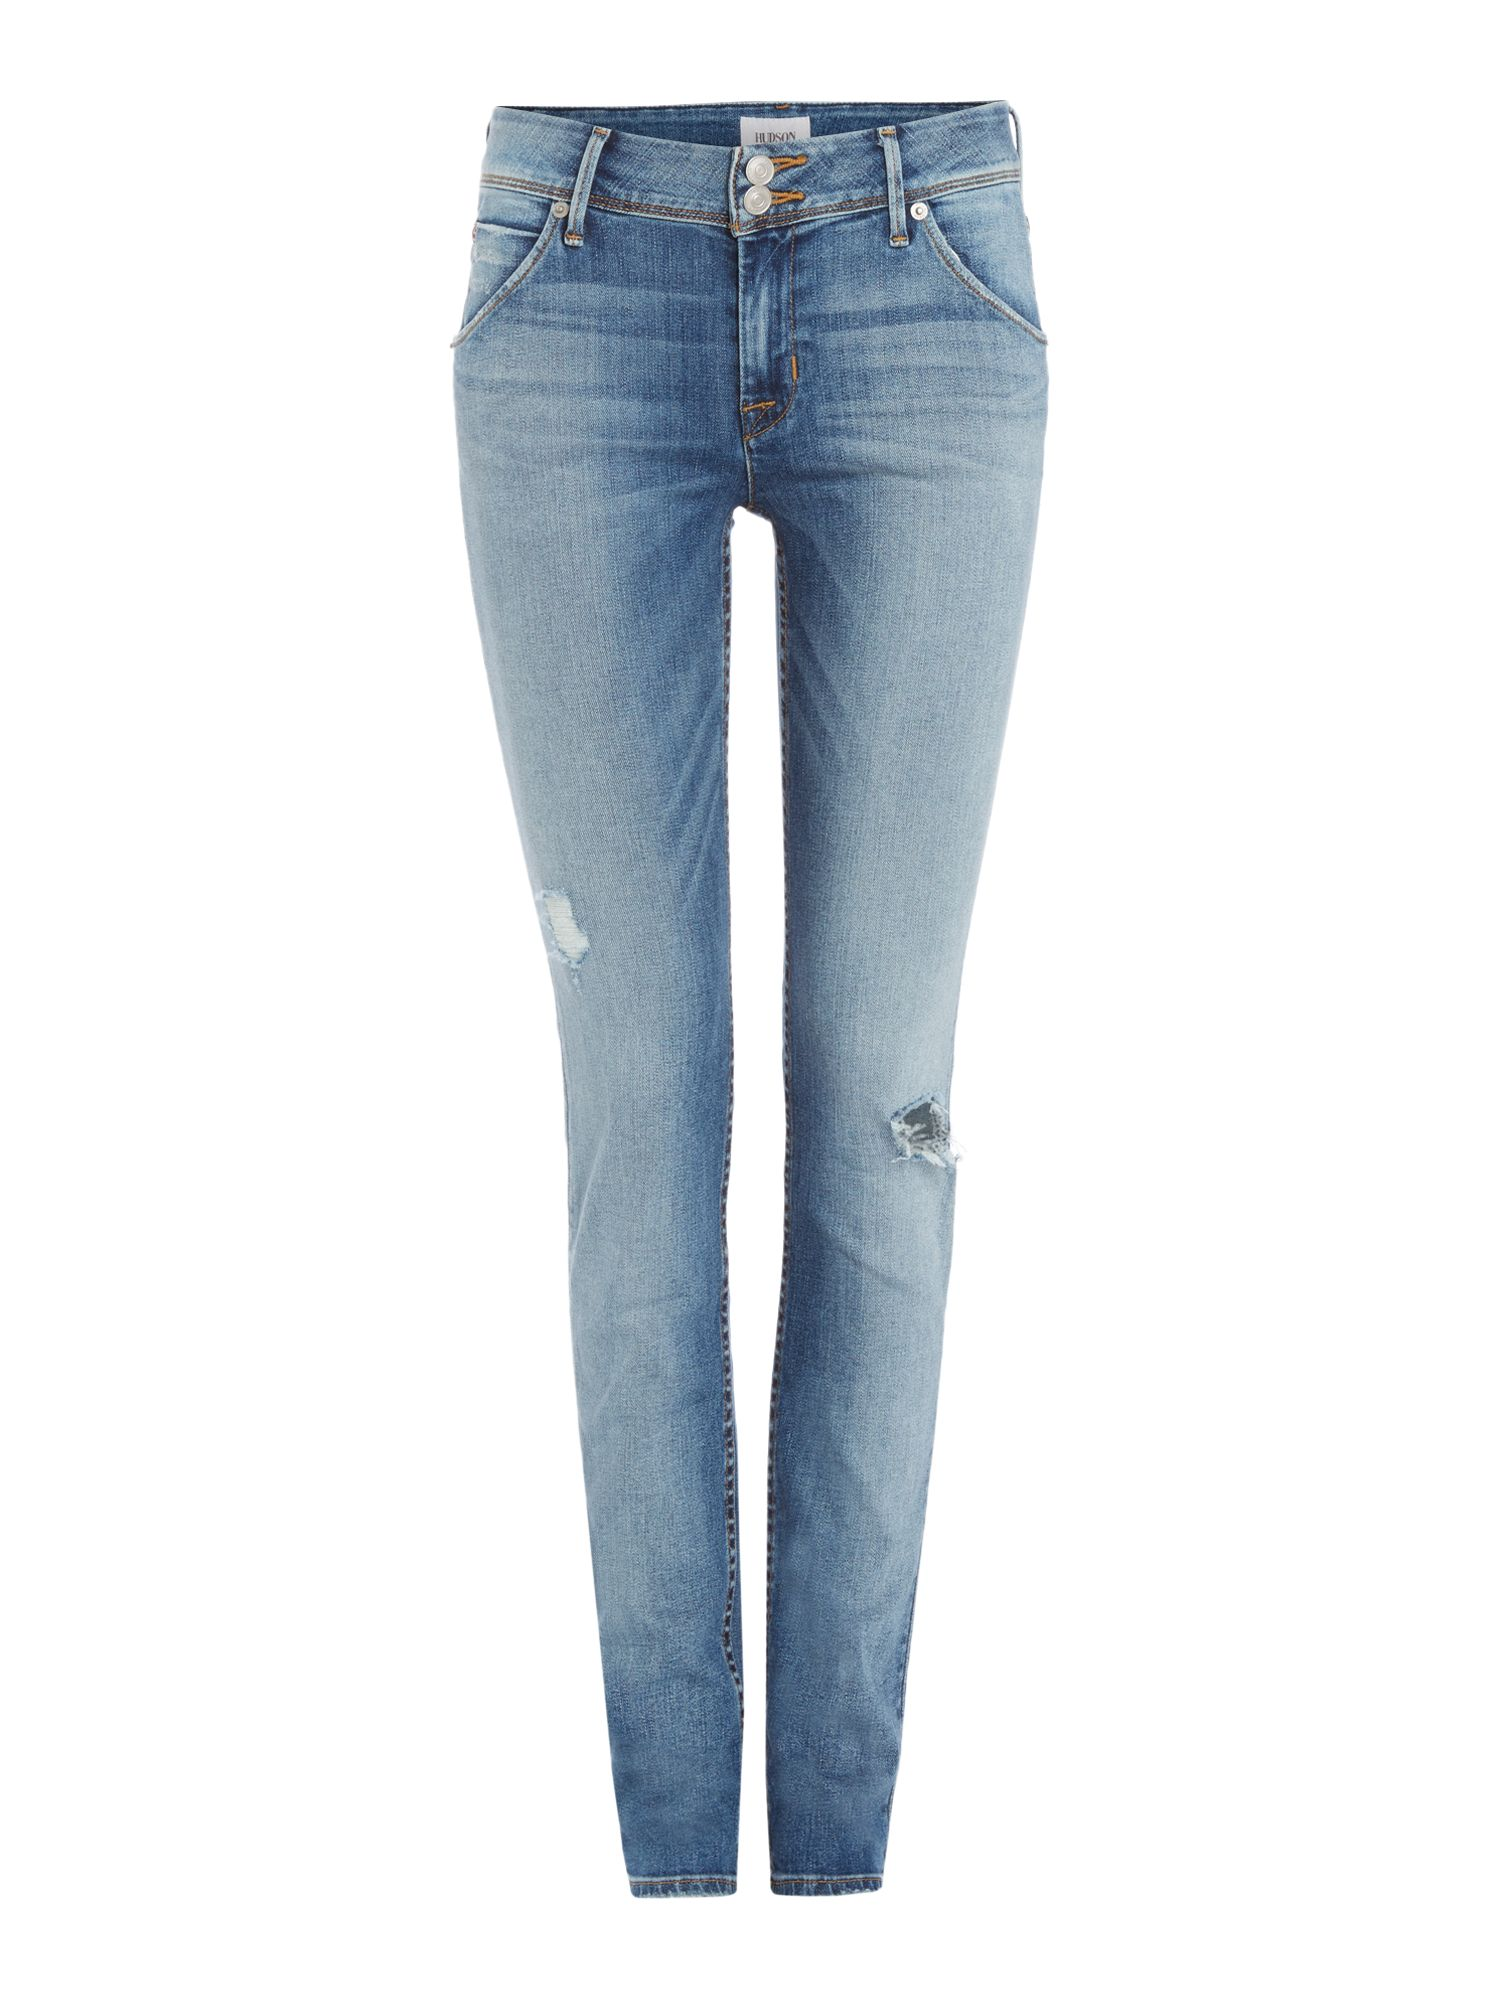 Hudson Jeans Colin midrise distressed jeans in ambitions 2 Denim Light Wash